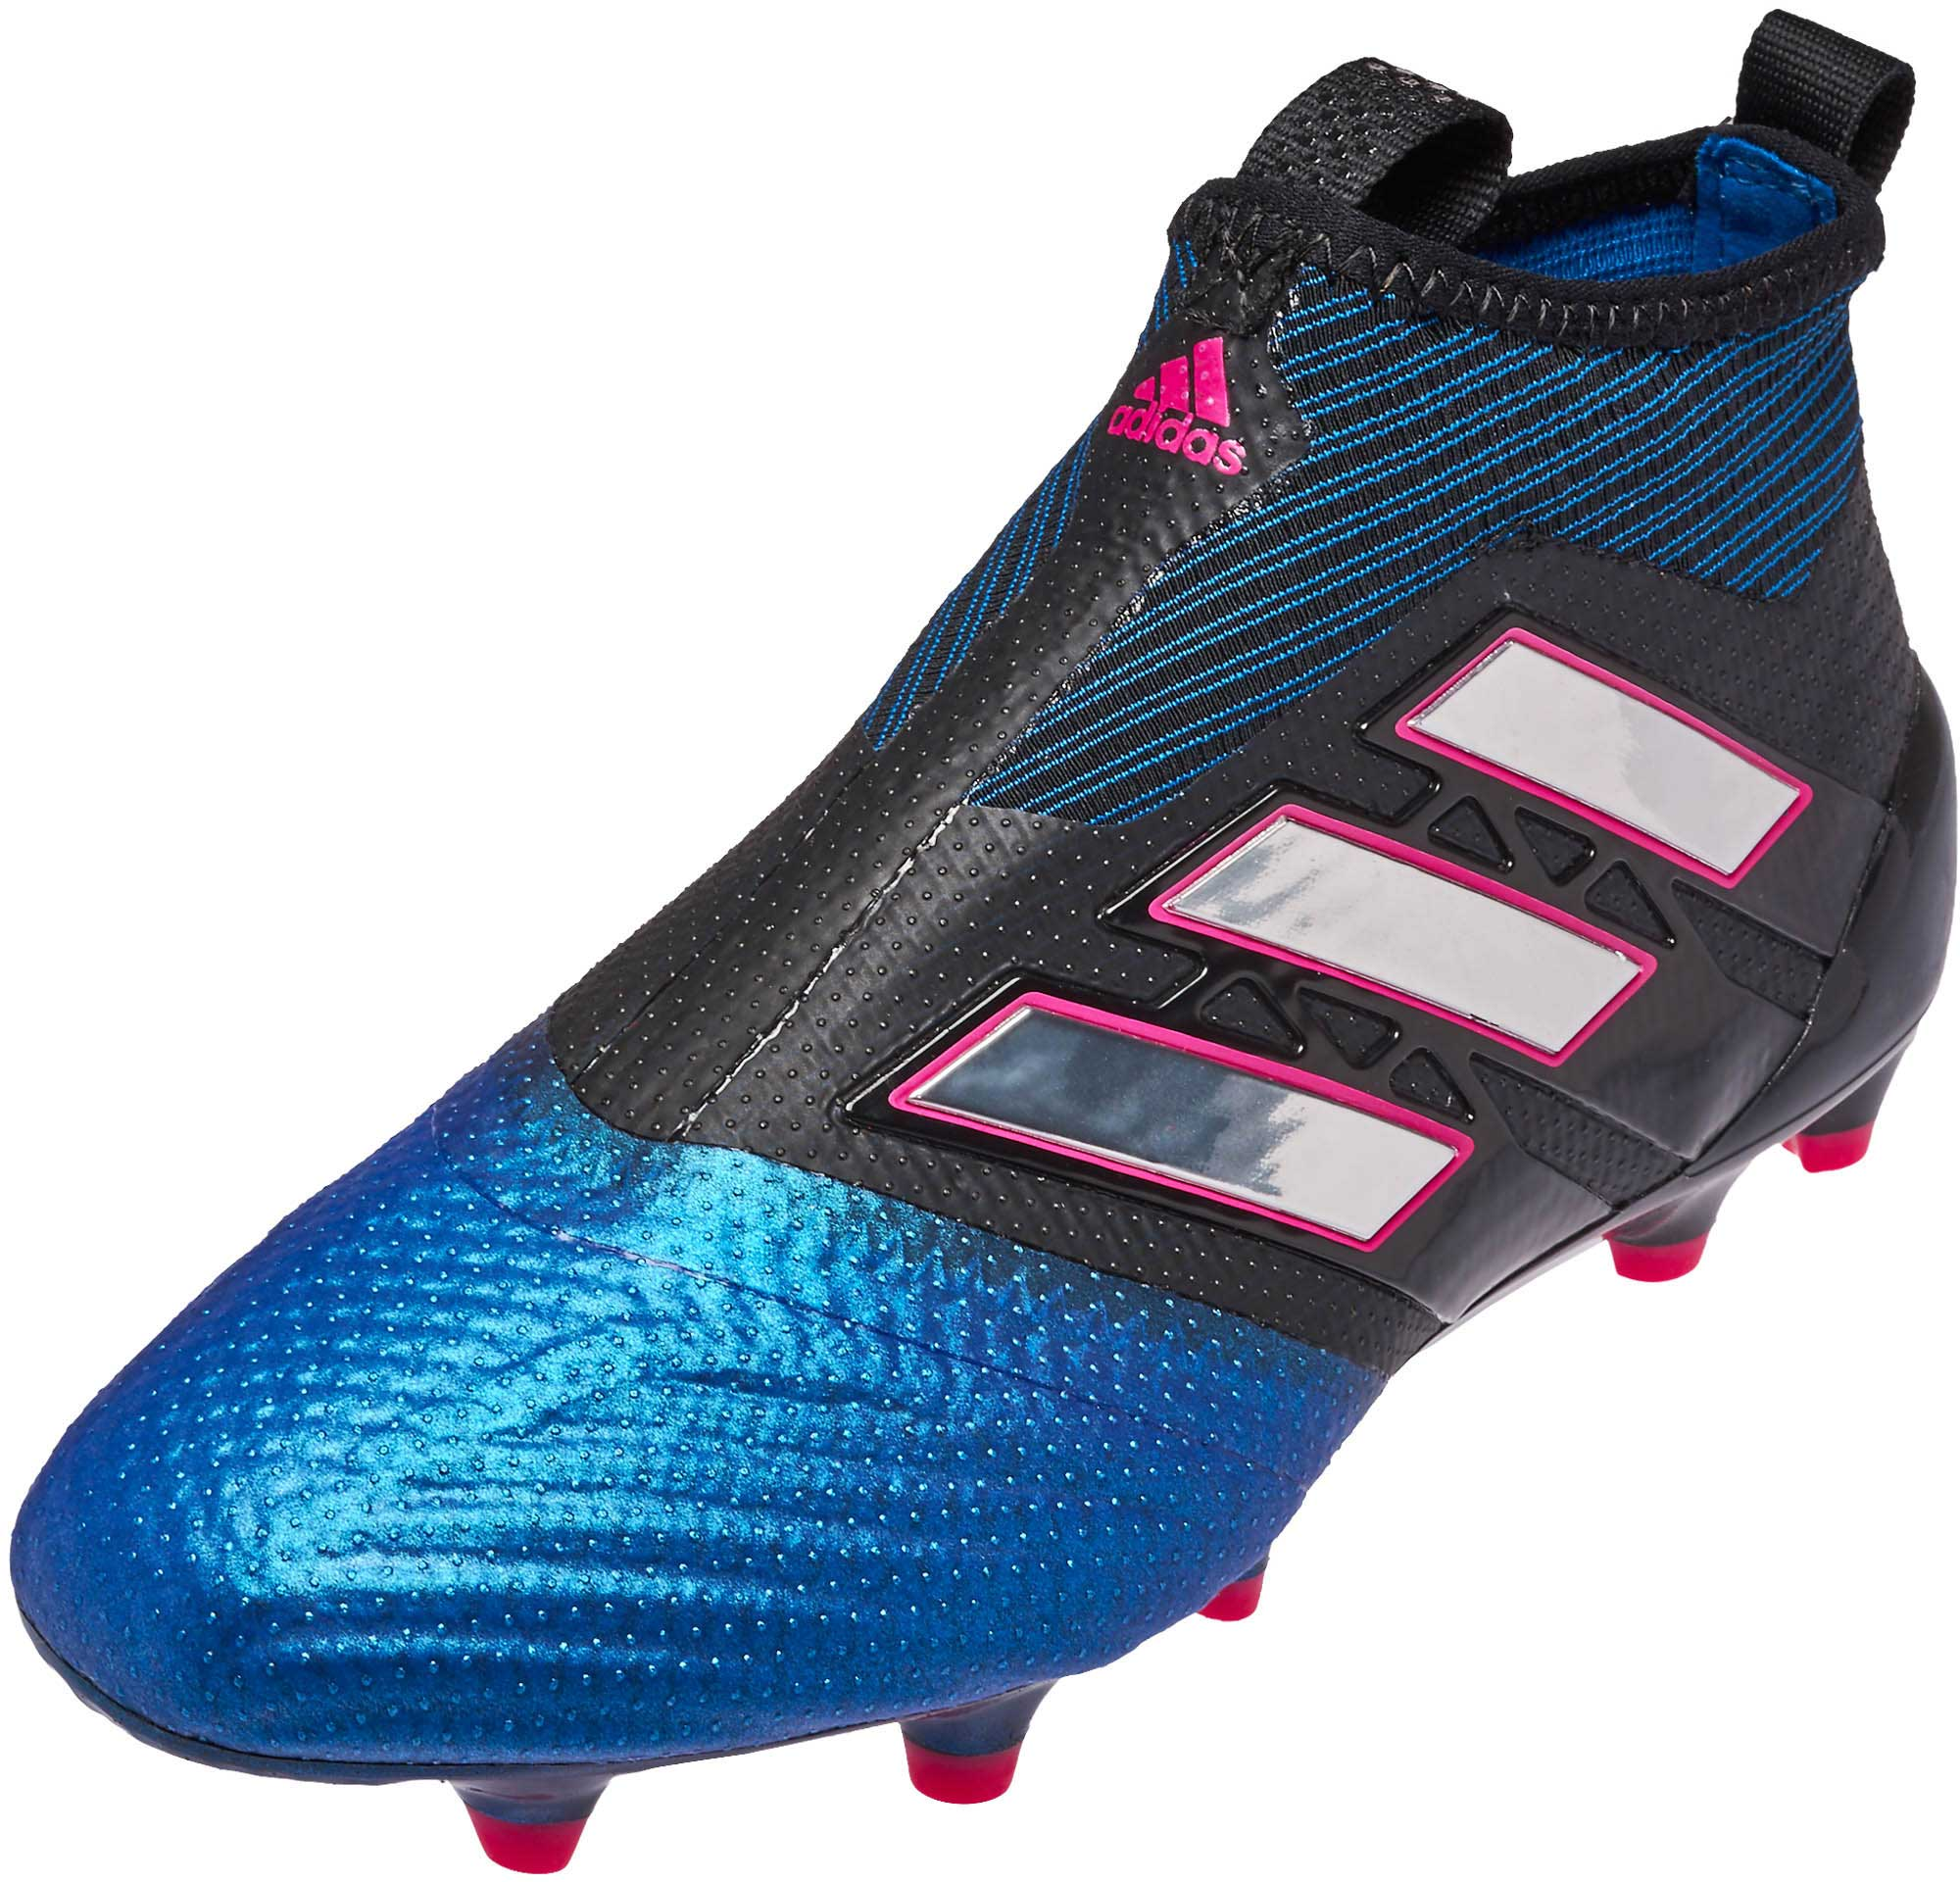 6ed43c448ae2 adidas Kids ACE 17+ Purecontrol FG Soccer Cleats - Black & White ...